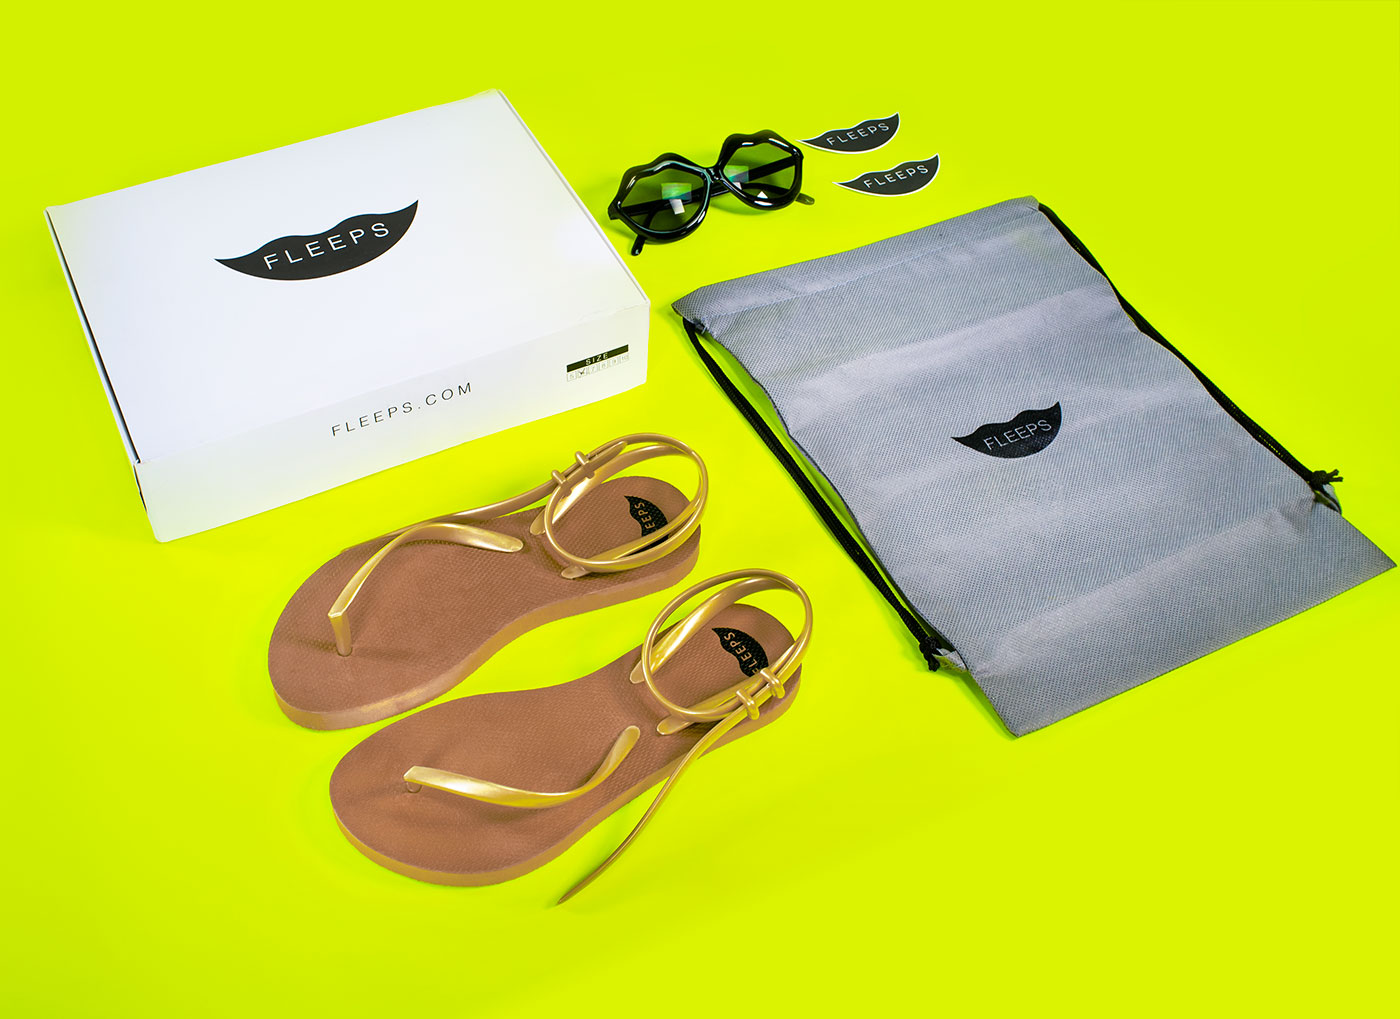 Outfit Branding & Design Fleeps Packaging Sandals